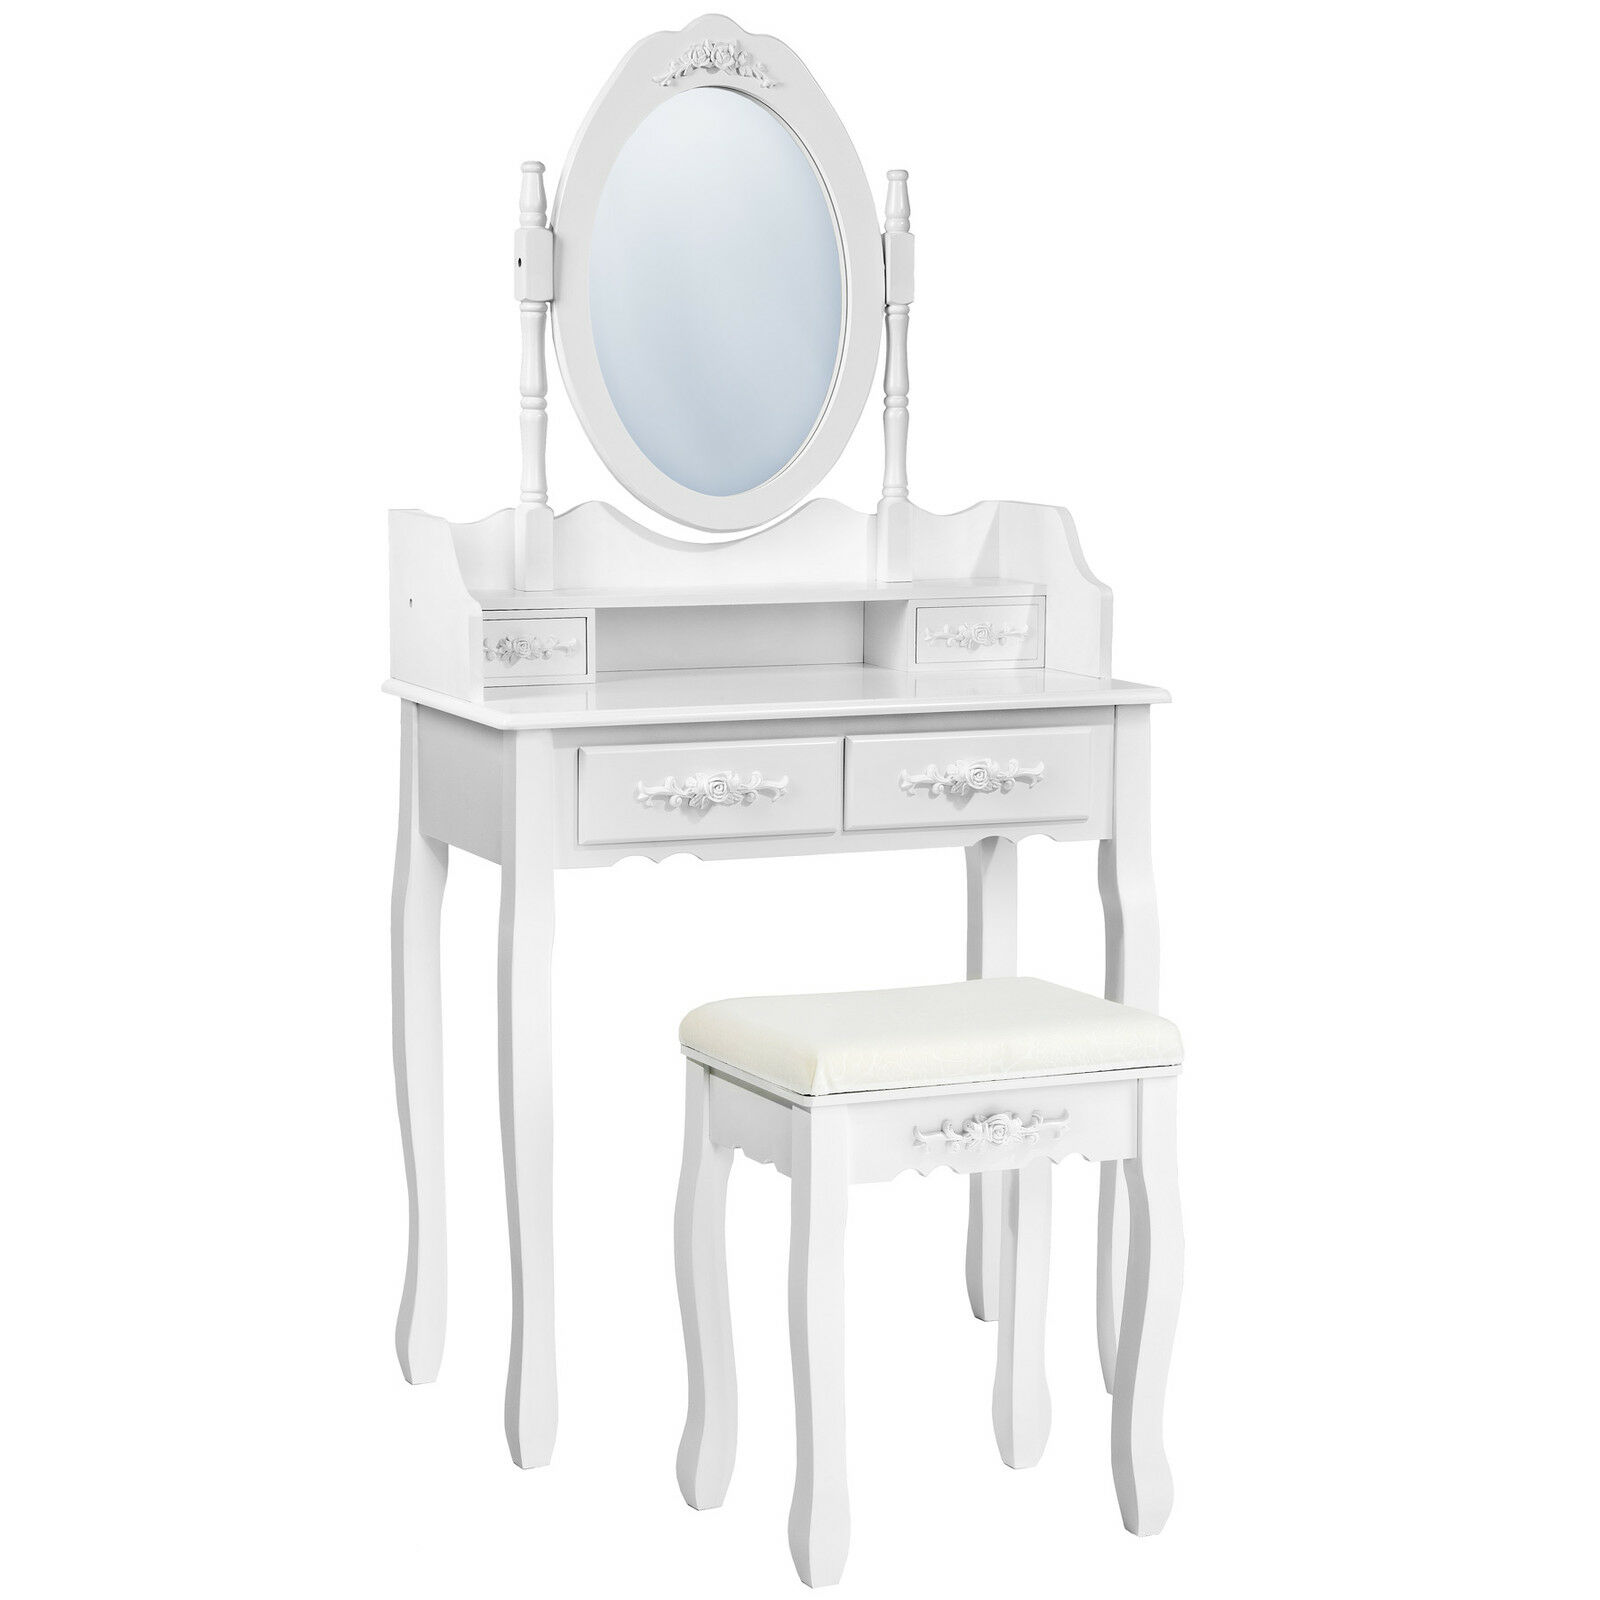 coiffeuse meuble table de maquillage tabouret commode avec miroir 4 tiroir blanc eur 175 90. Black Bedroom Furniture Sets. Home Design Ideas